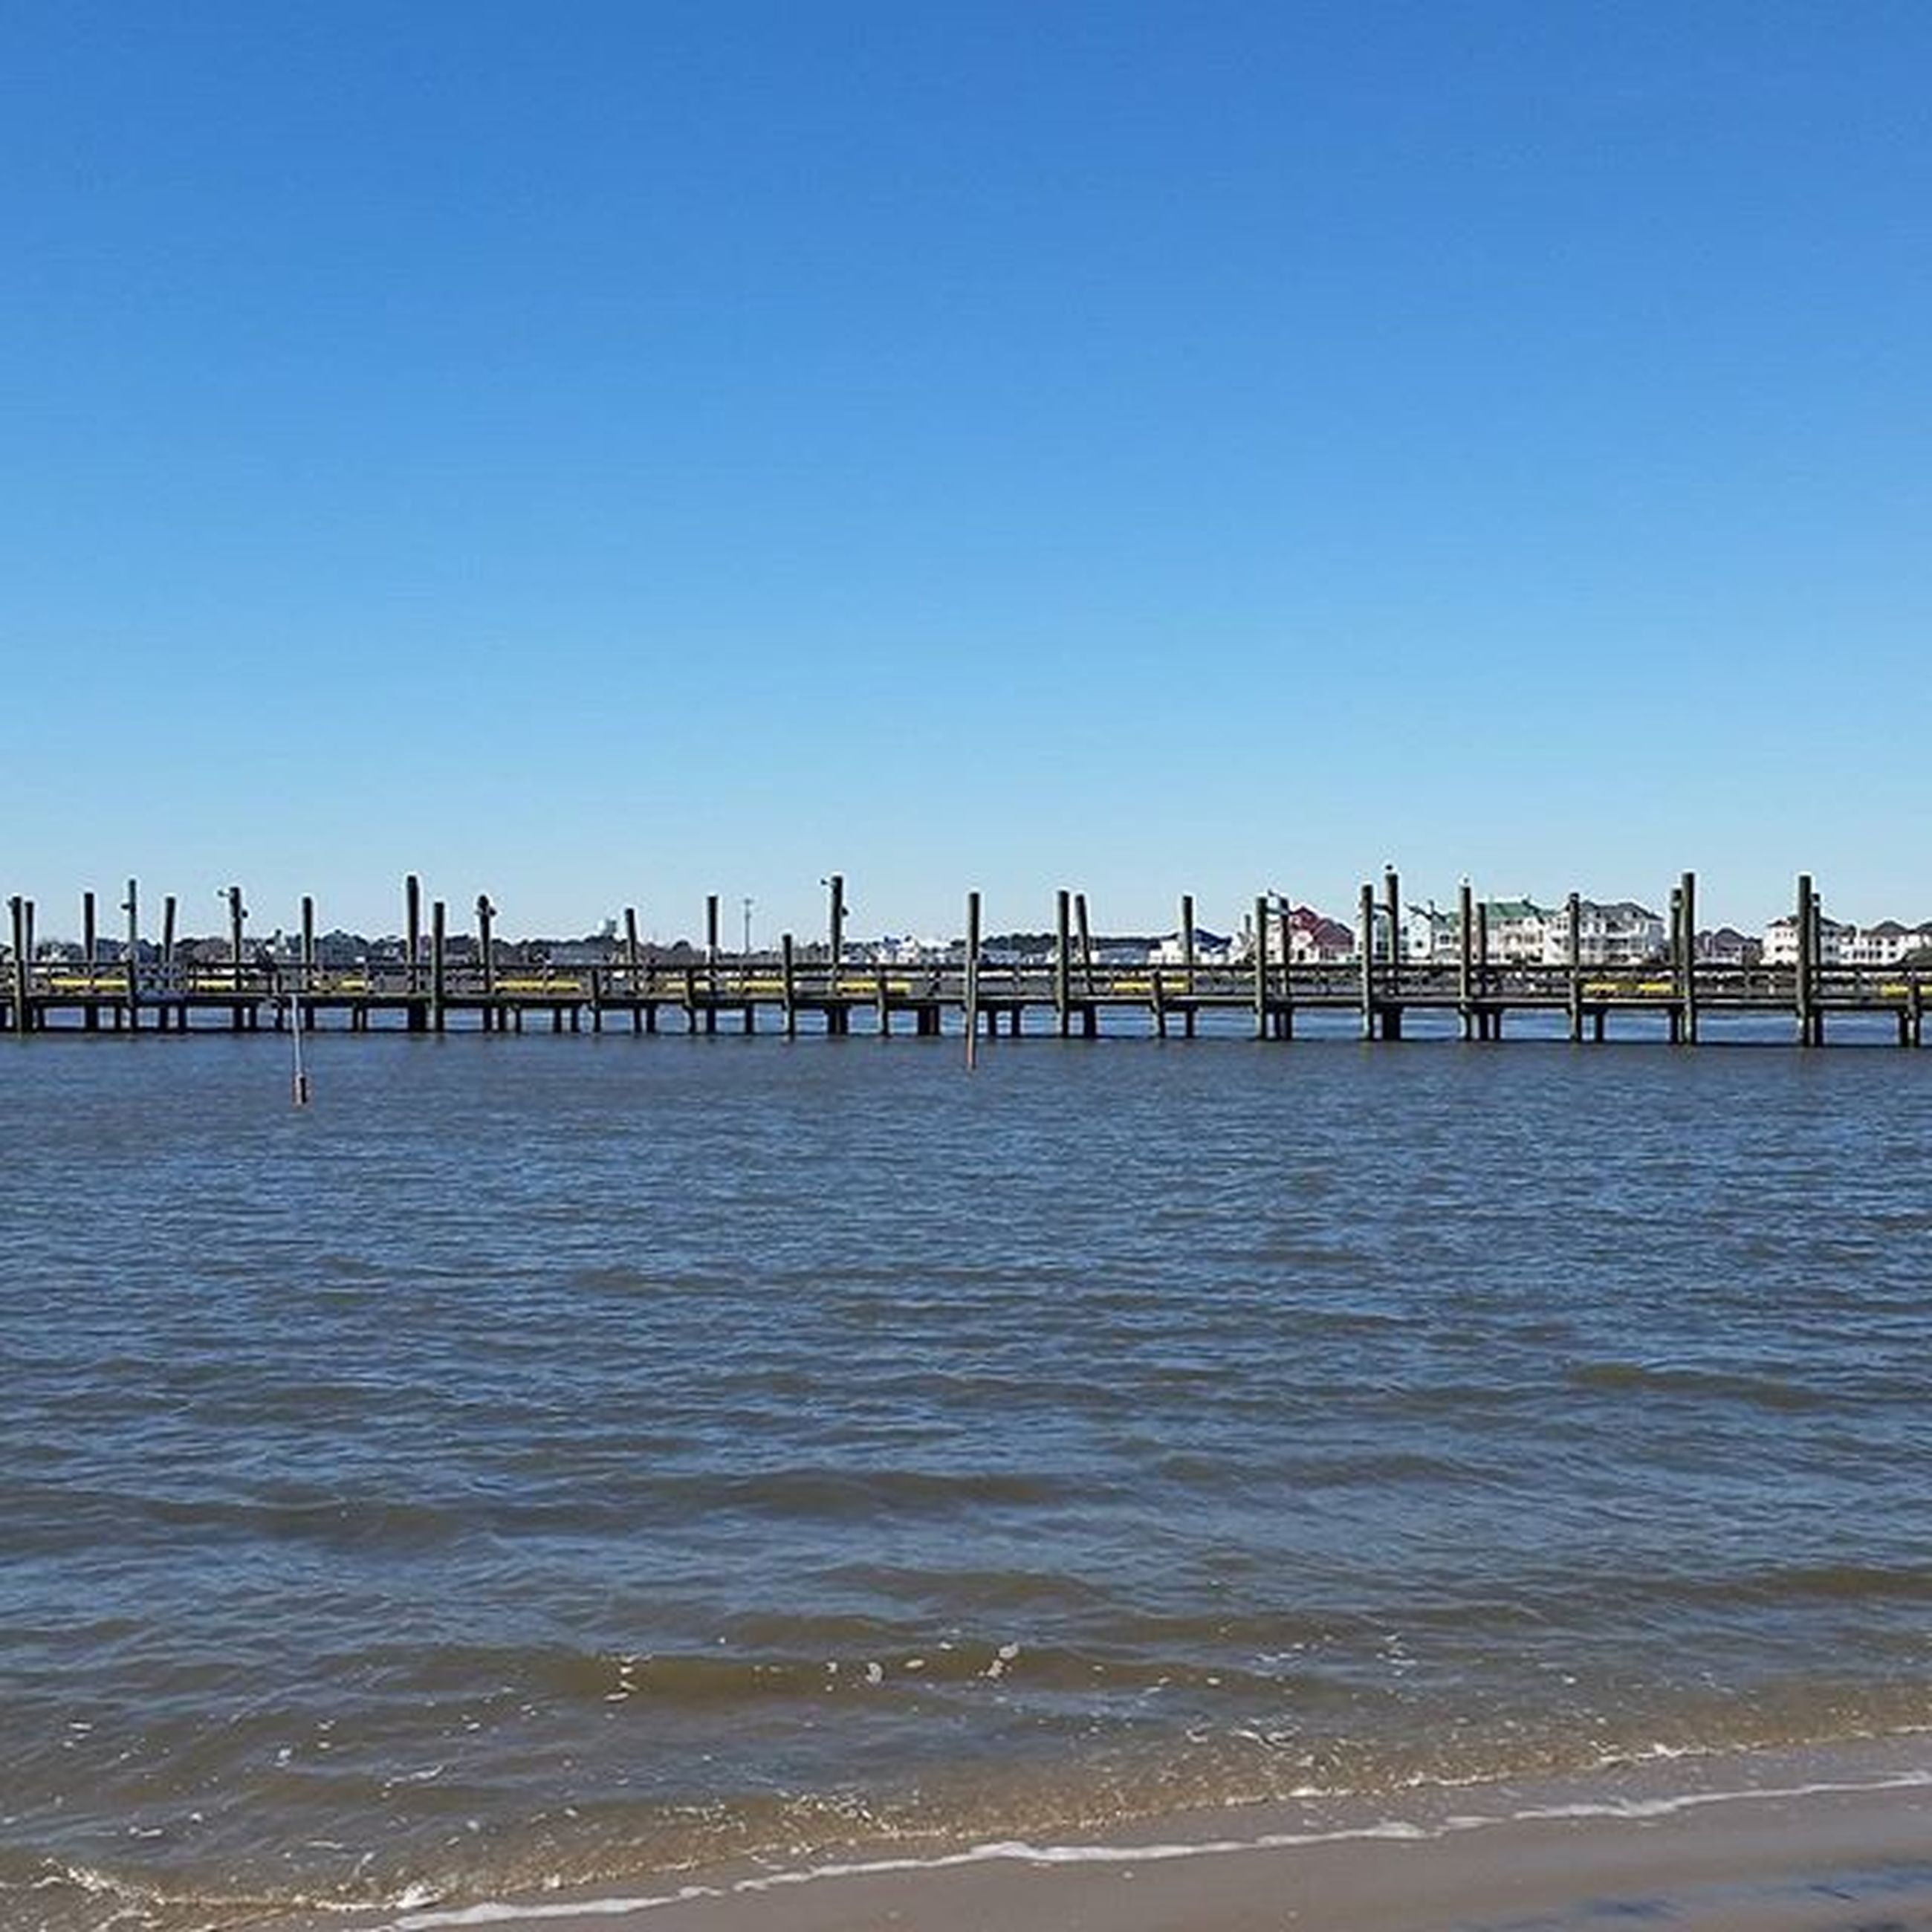 water, sea, clear sky, copy space, blue, pier, beach, tranquil scene, tranquility, built structure, nature, wooden post, scenics, beauty in nature, waterfront, wood - material, architecture, sky, shore, horizon over water